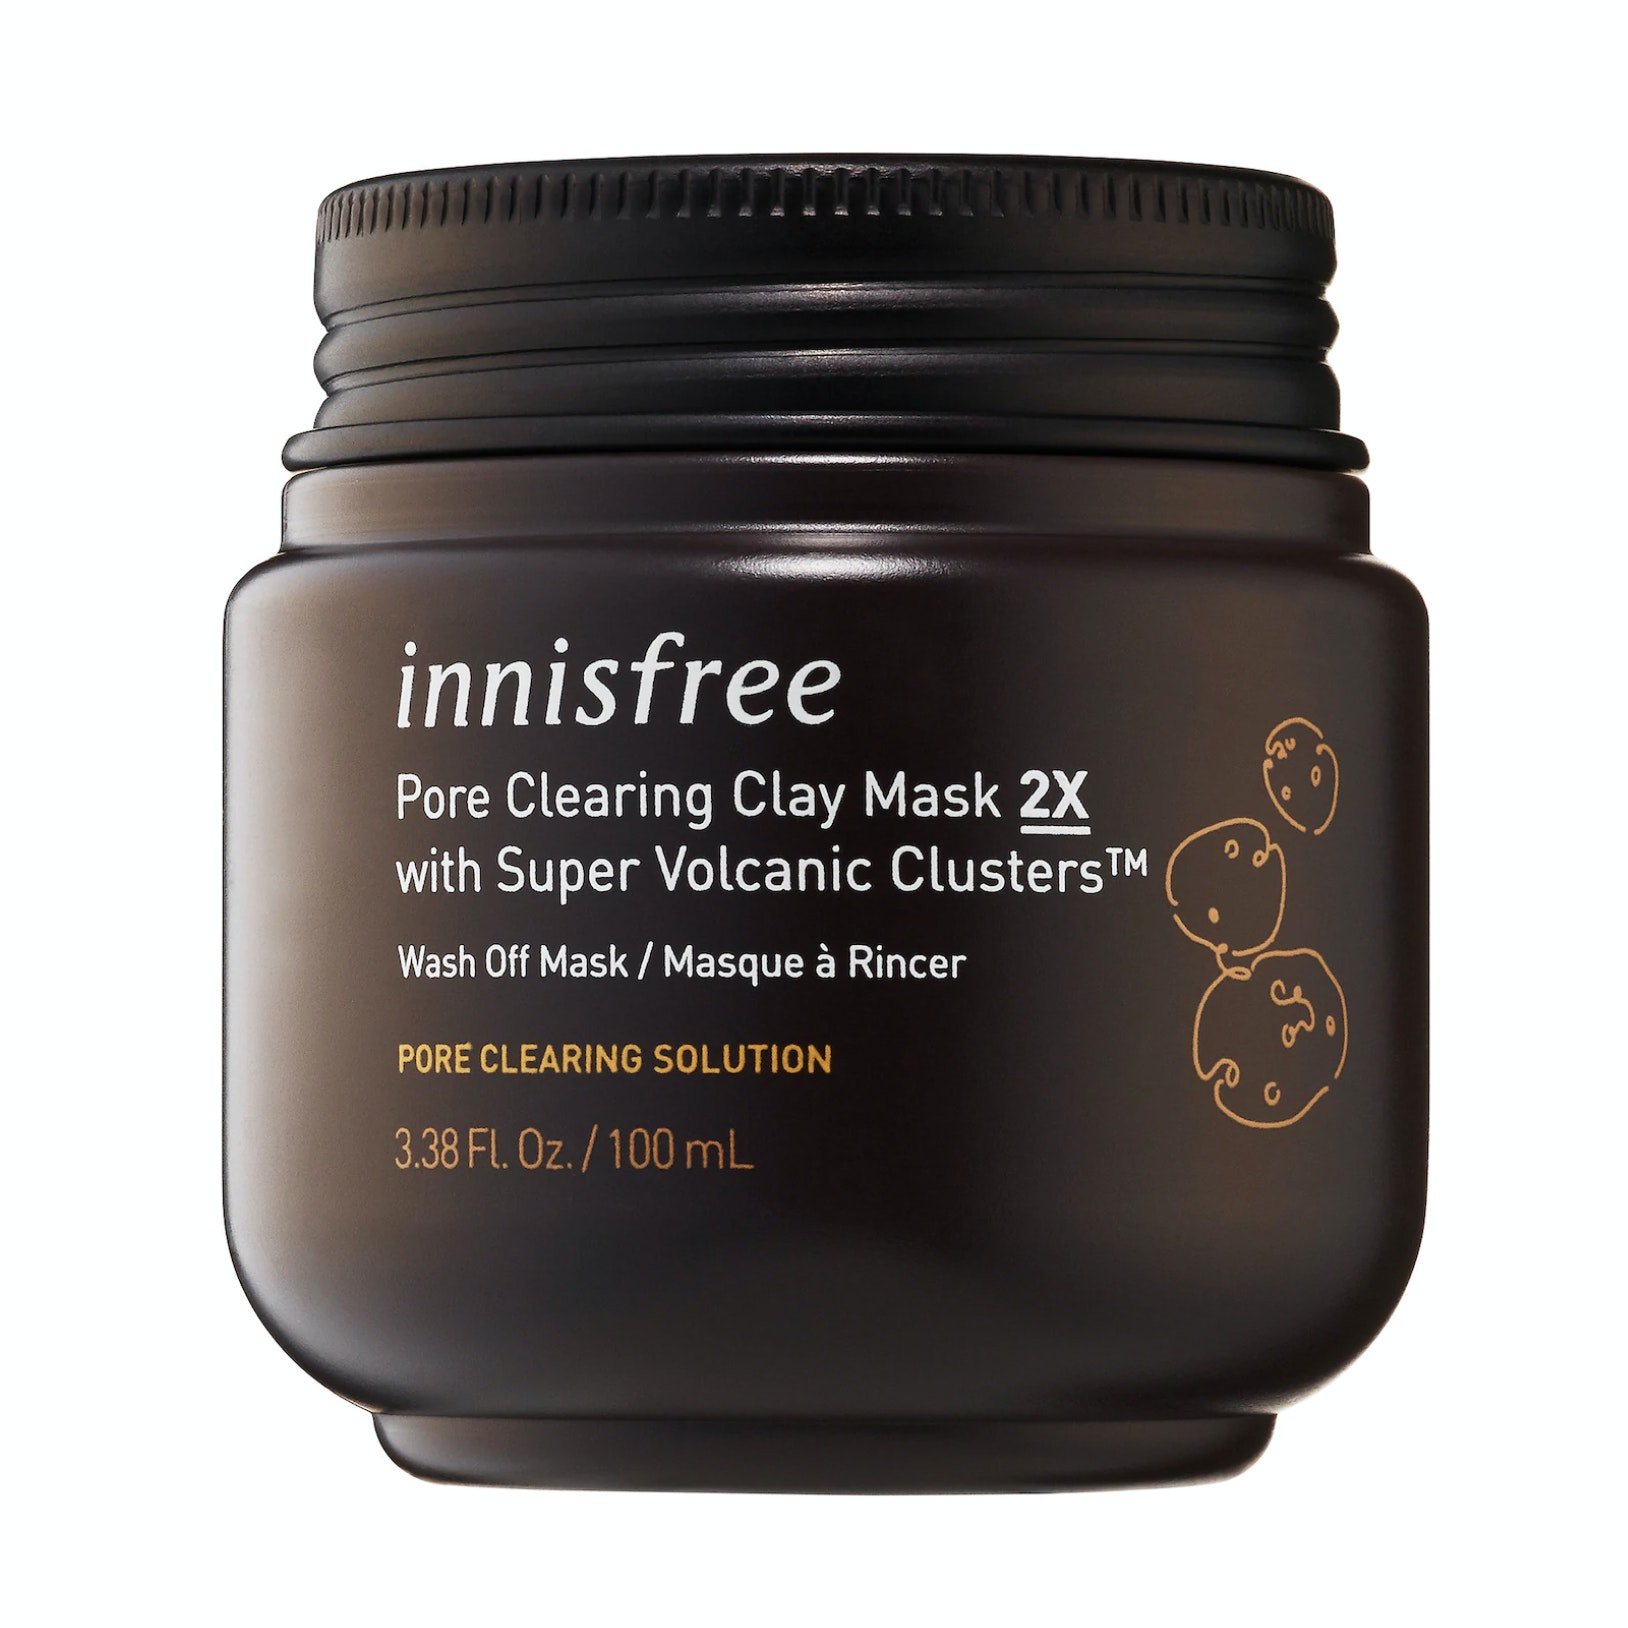 Innisfree® Pore Clearing Clay Mask with Super Volcanic Clusters™